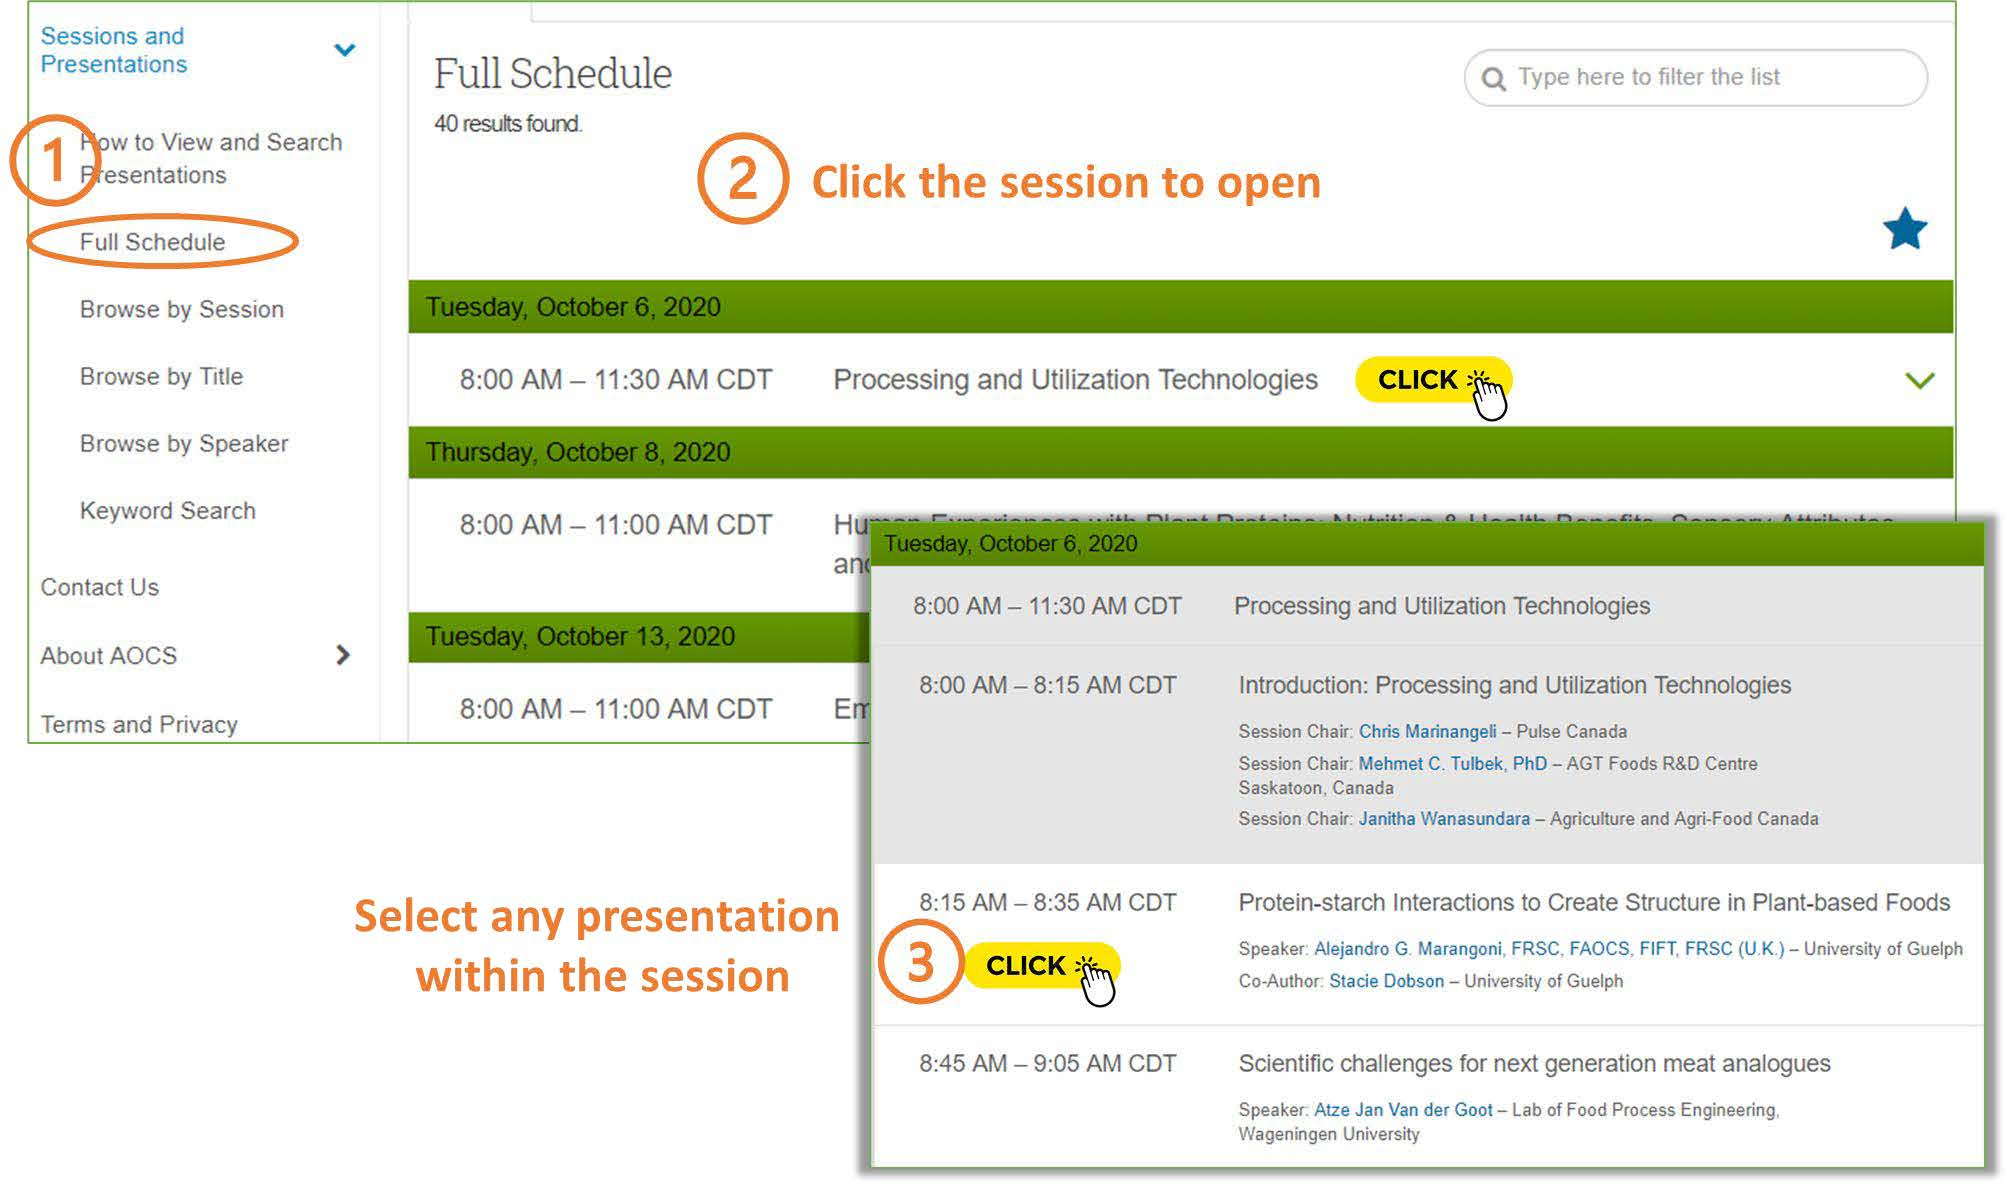 Use the left hand navigation to open the full schedule, click a session to open a list of presentations and click a presentation to open a presentation pop-up